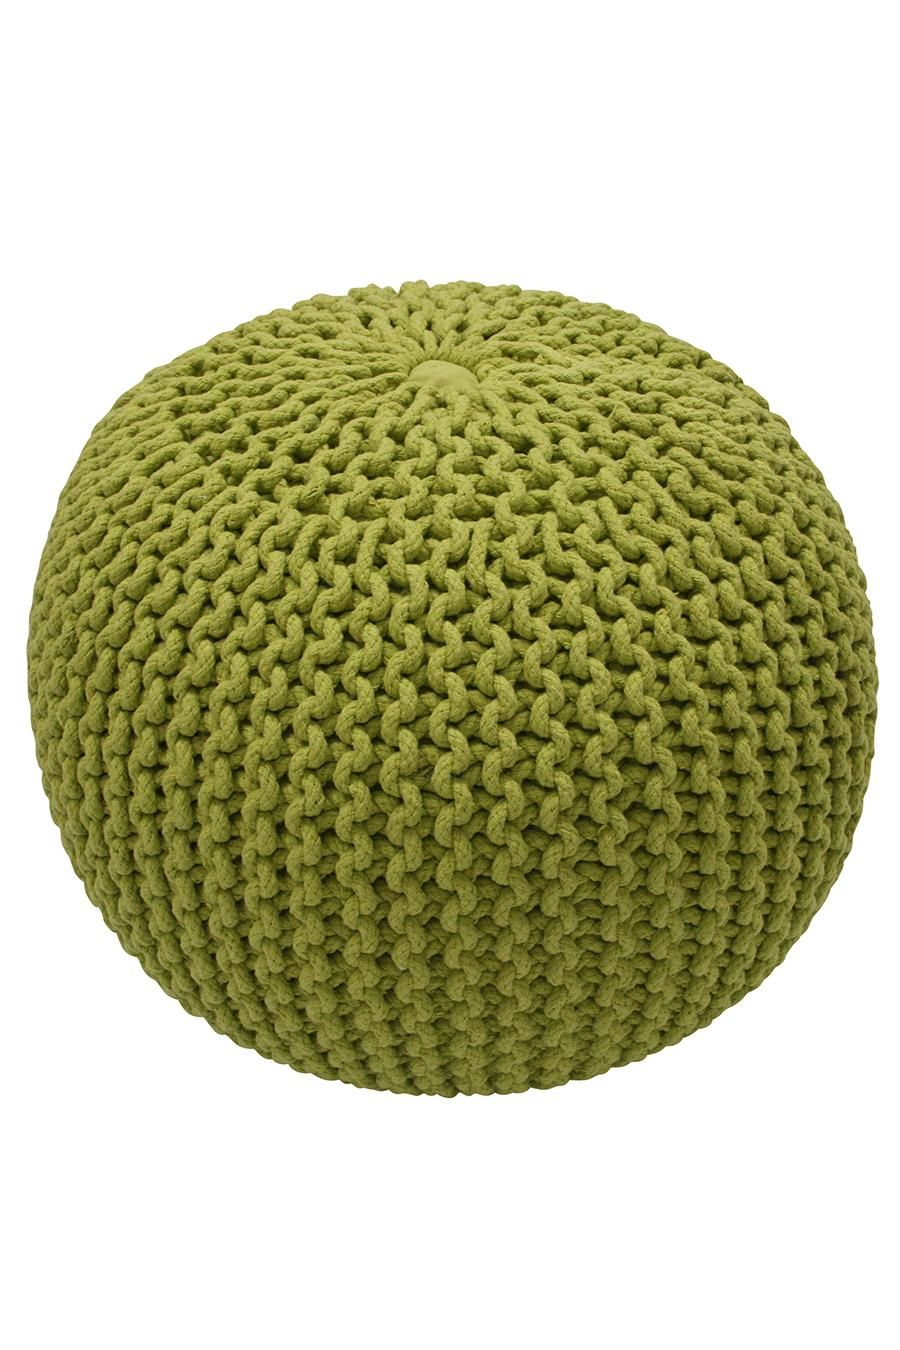 Poufs For Sale Classy Nuloom Knitted Pouf Have Wanted This Forever For Lu's Room And Now Decorating Design